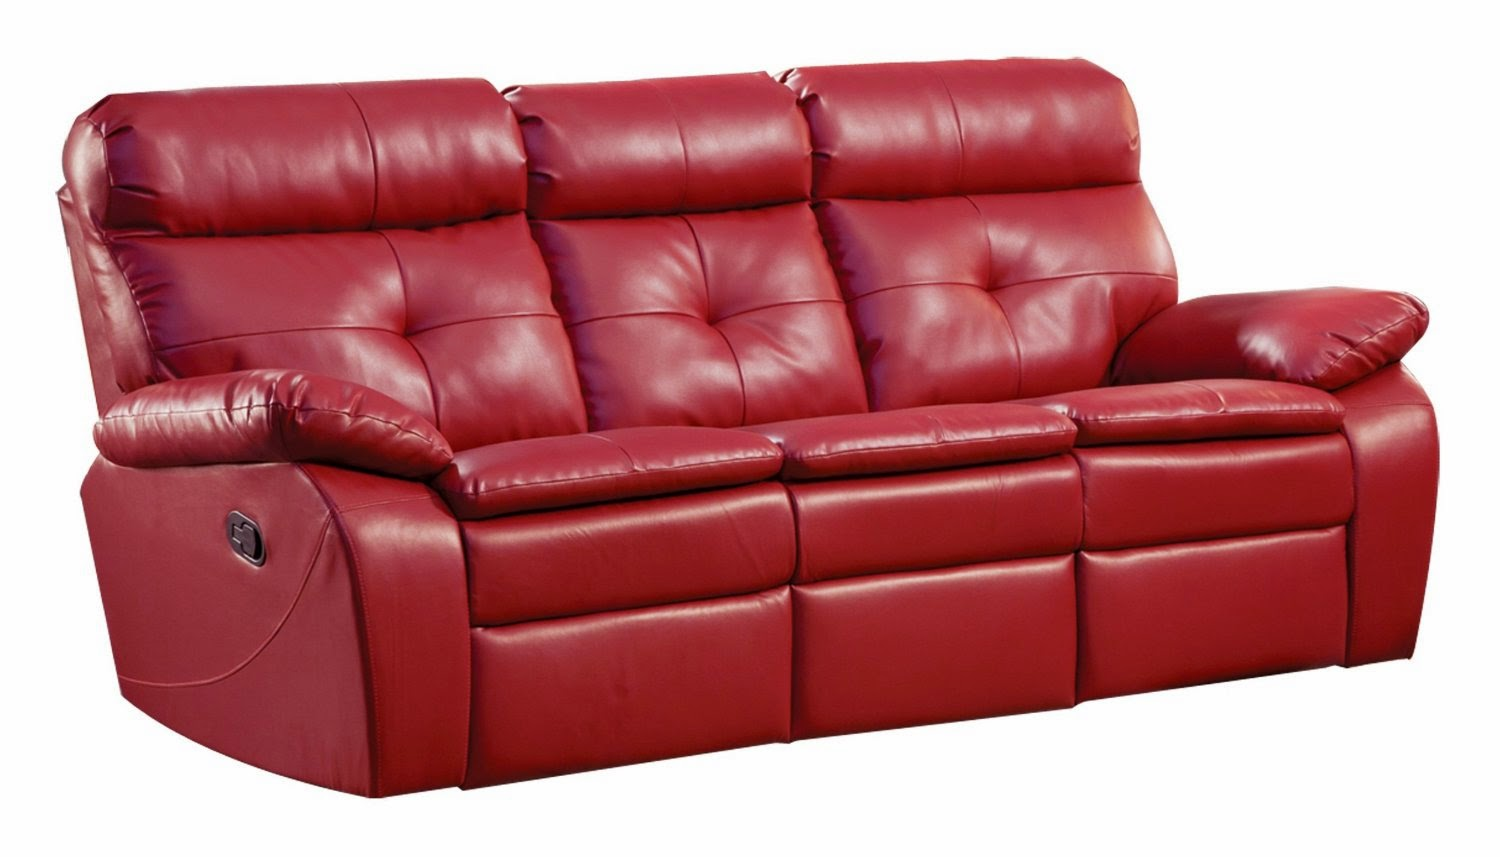 Top seller reclining and recliner sofa loveseat red leather dual reclining sofa Loveseats with console